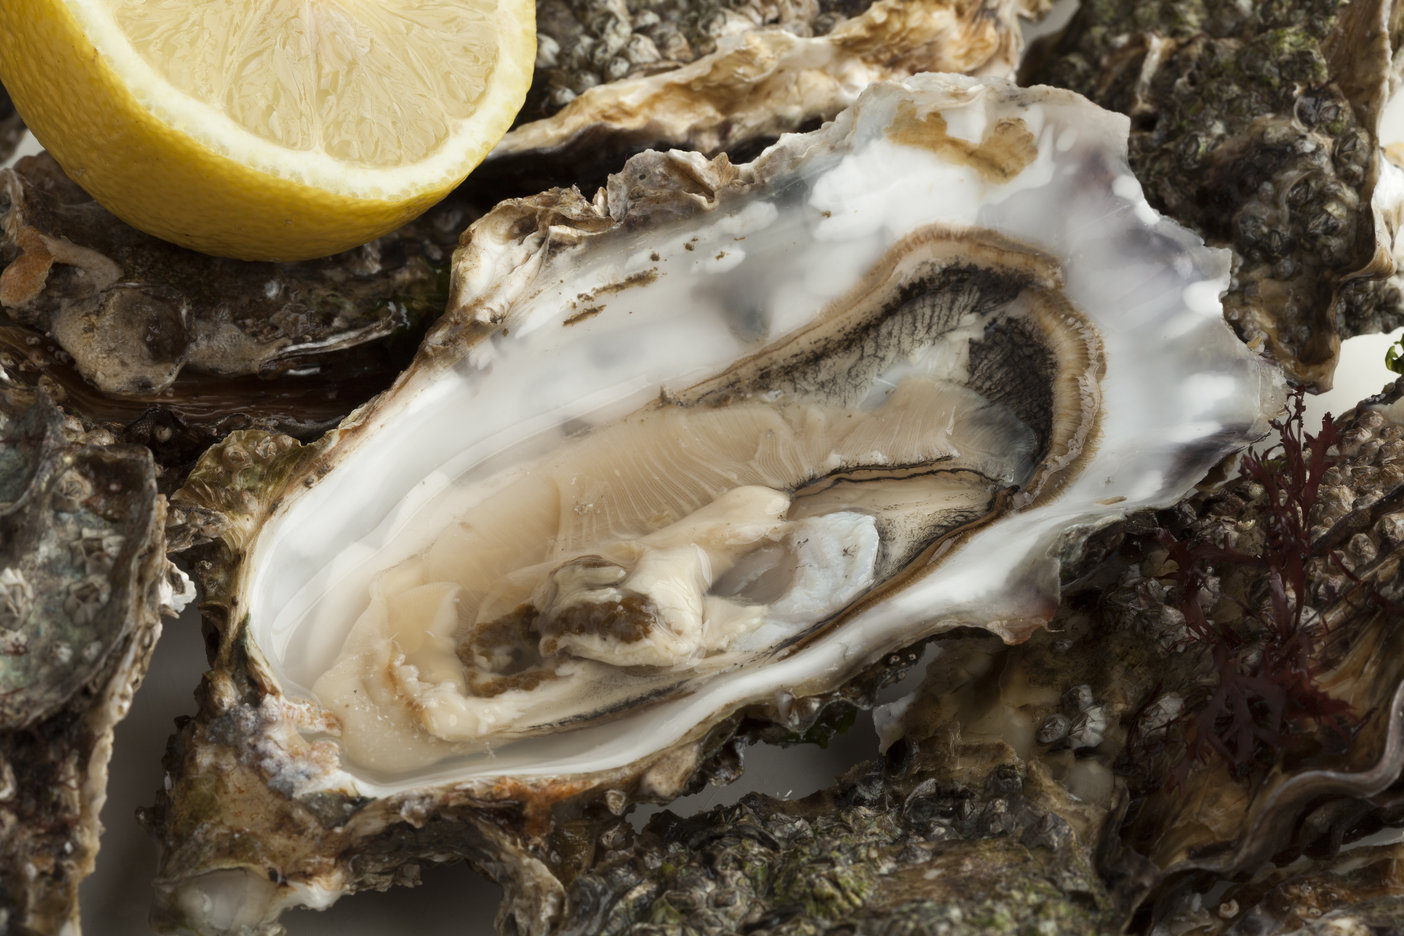 Best Oyster Shucking Knife (Plus a Full Guide to Shucking)